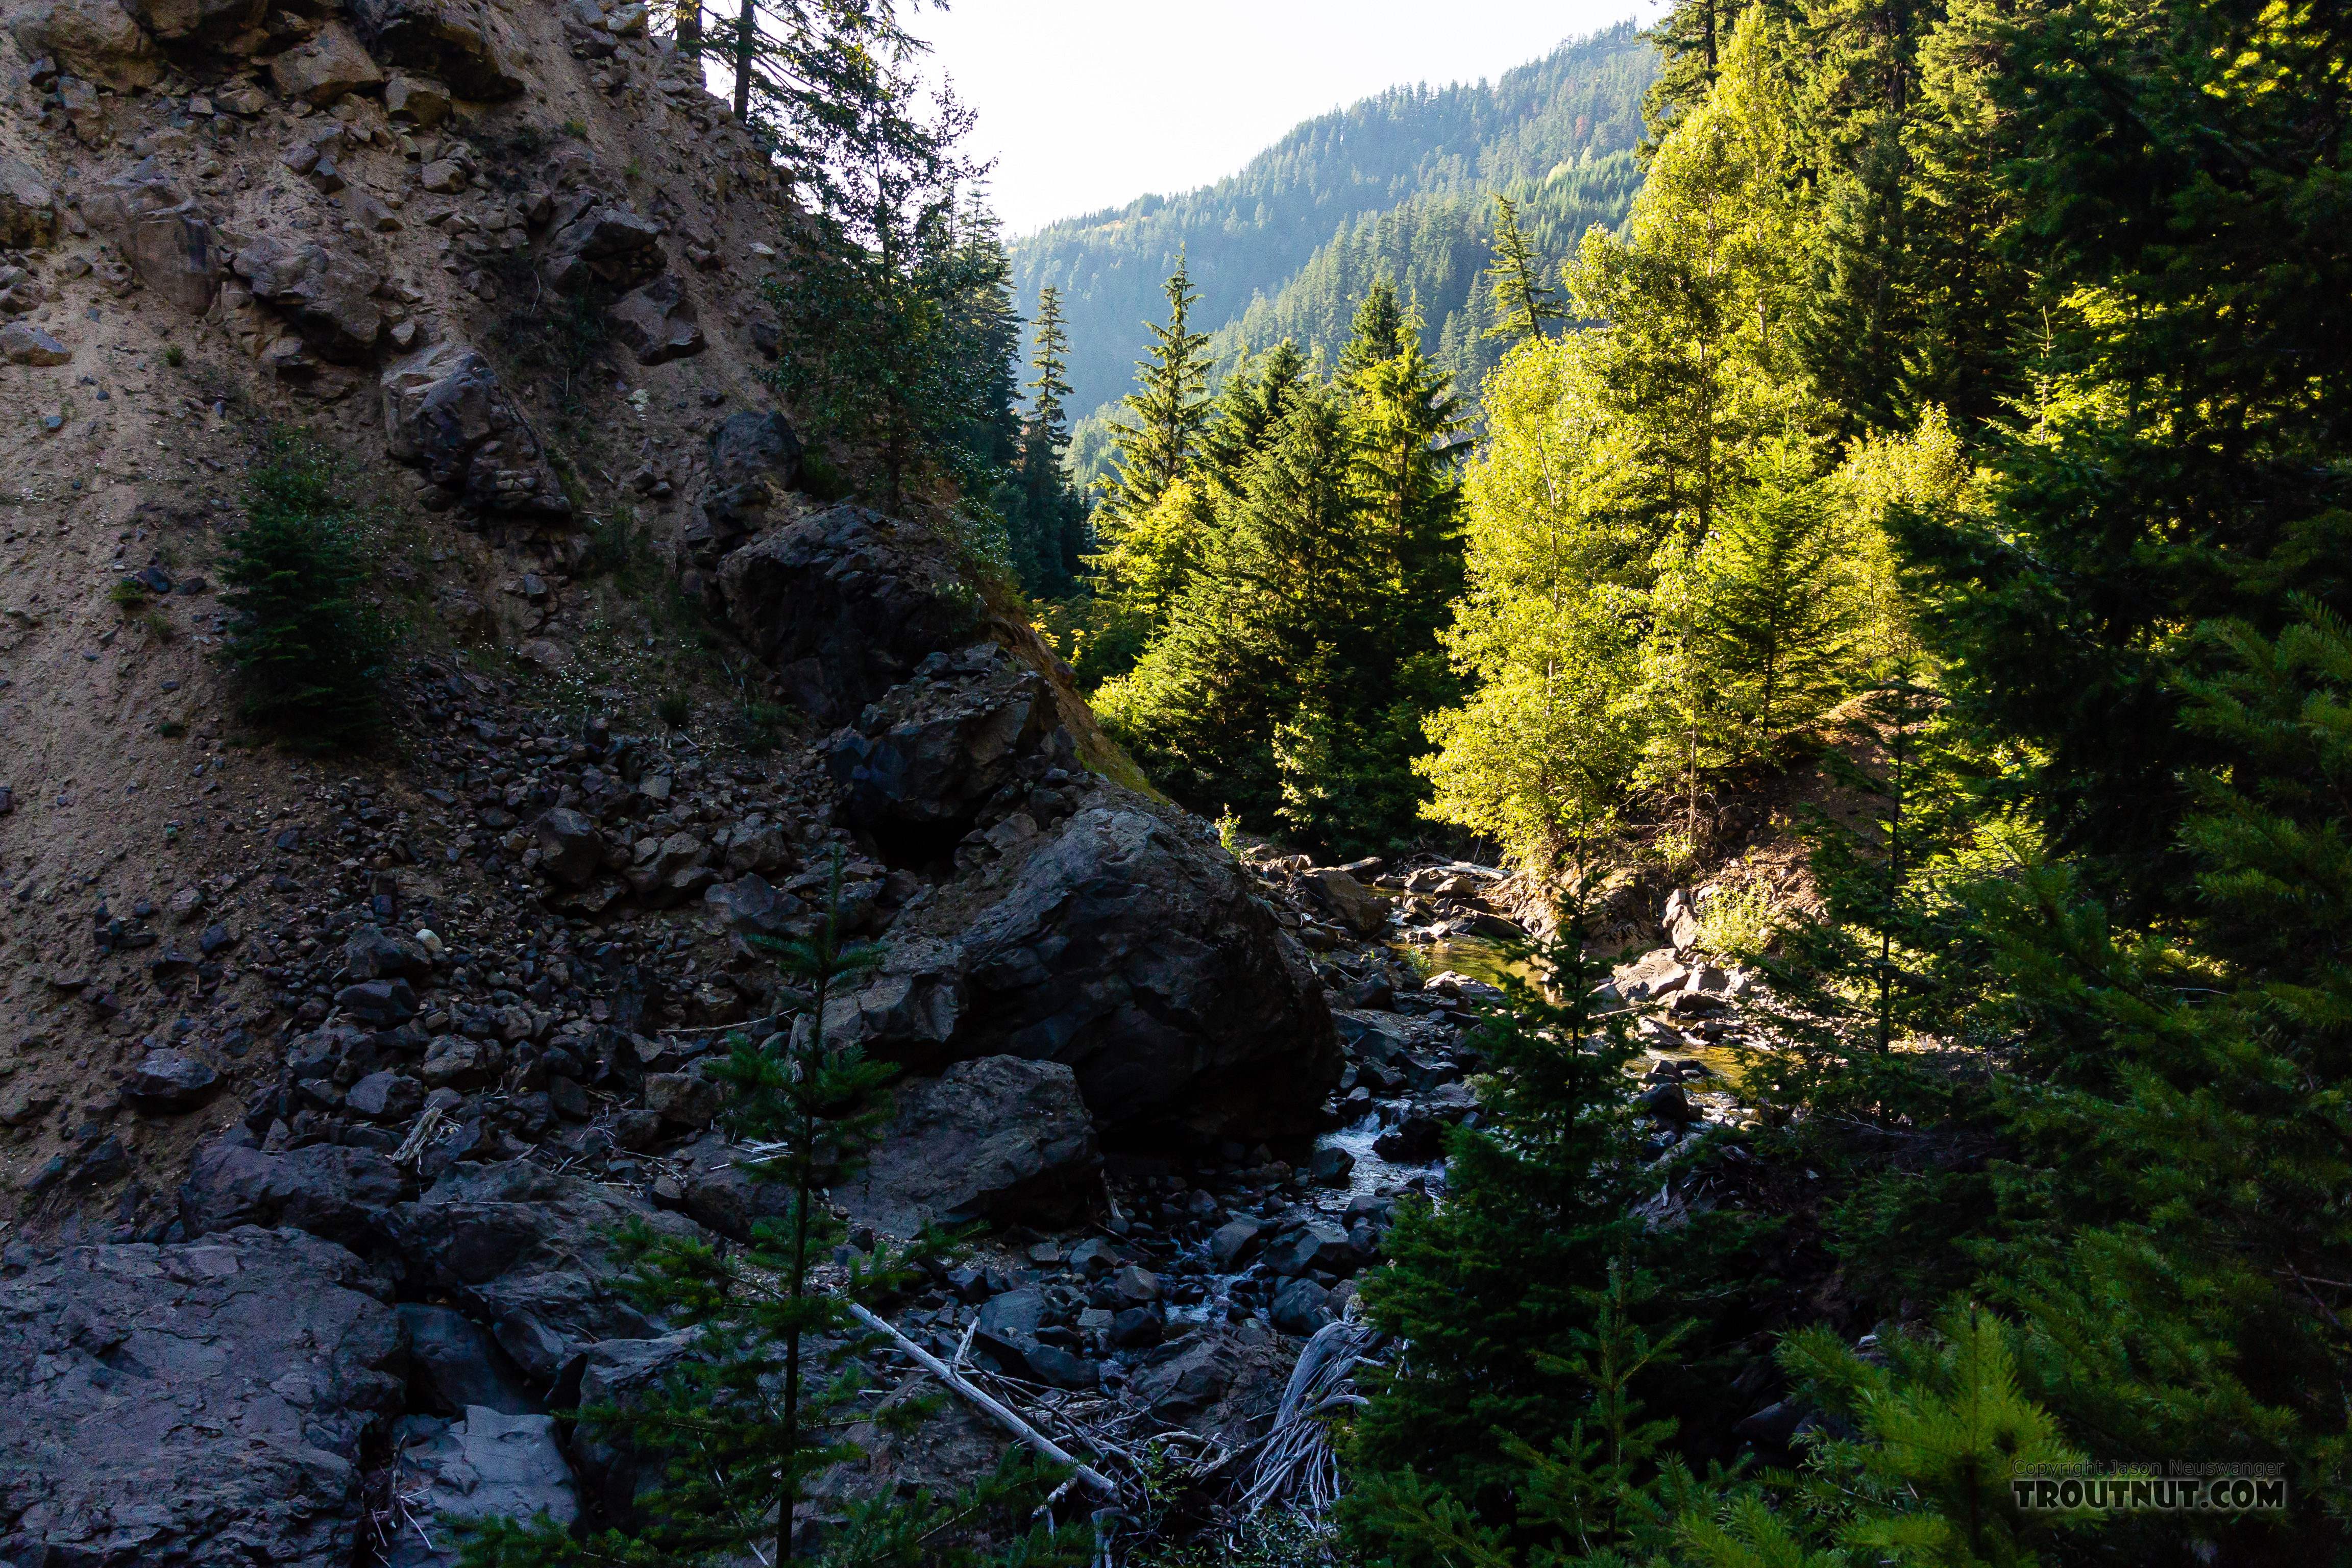 Upper end of the canyon, leading to a longer, low-gradient, gravelly stretch. From Mystery Creek # 249 in Washington.